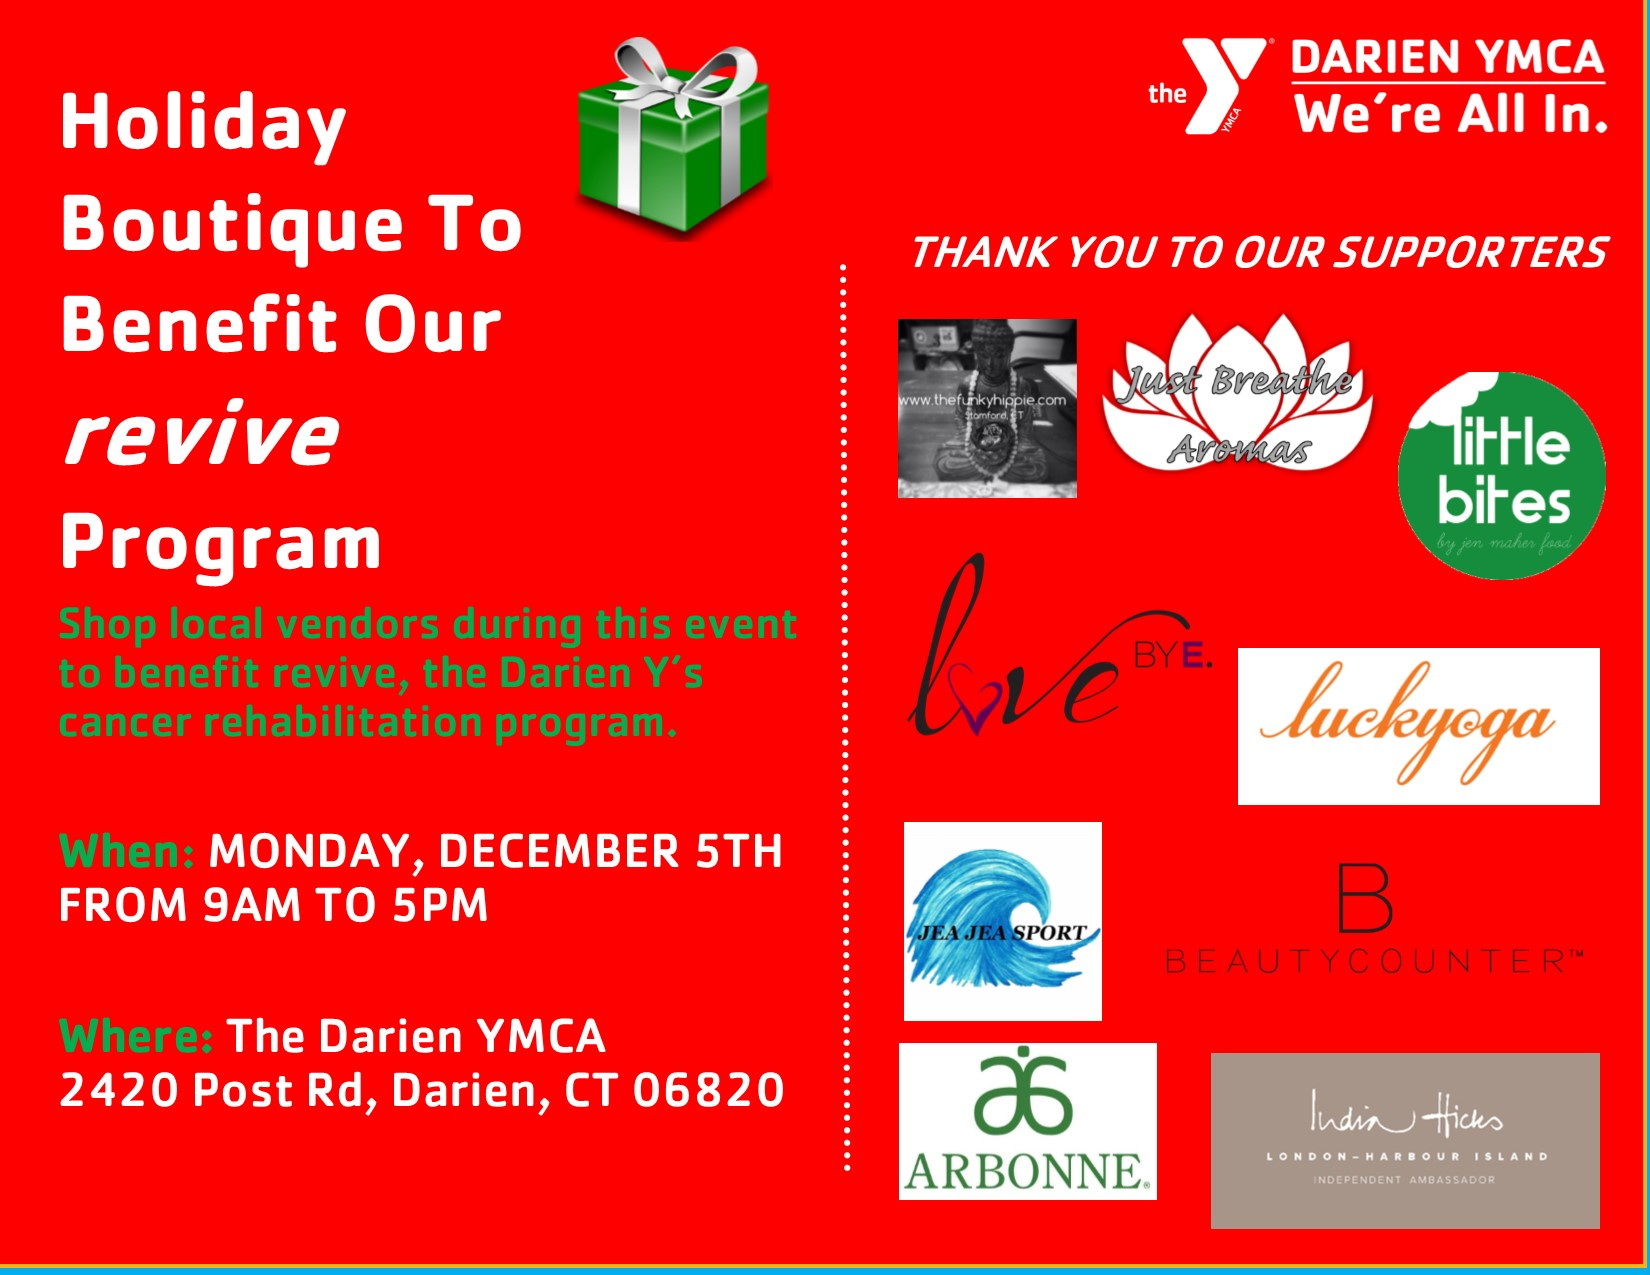 holiday-shopping-boutique-11-9-16a-1 - Darien YMCA